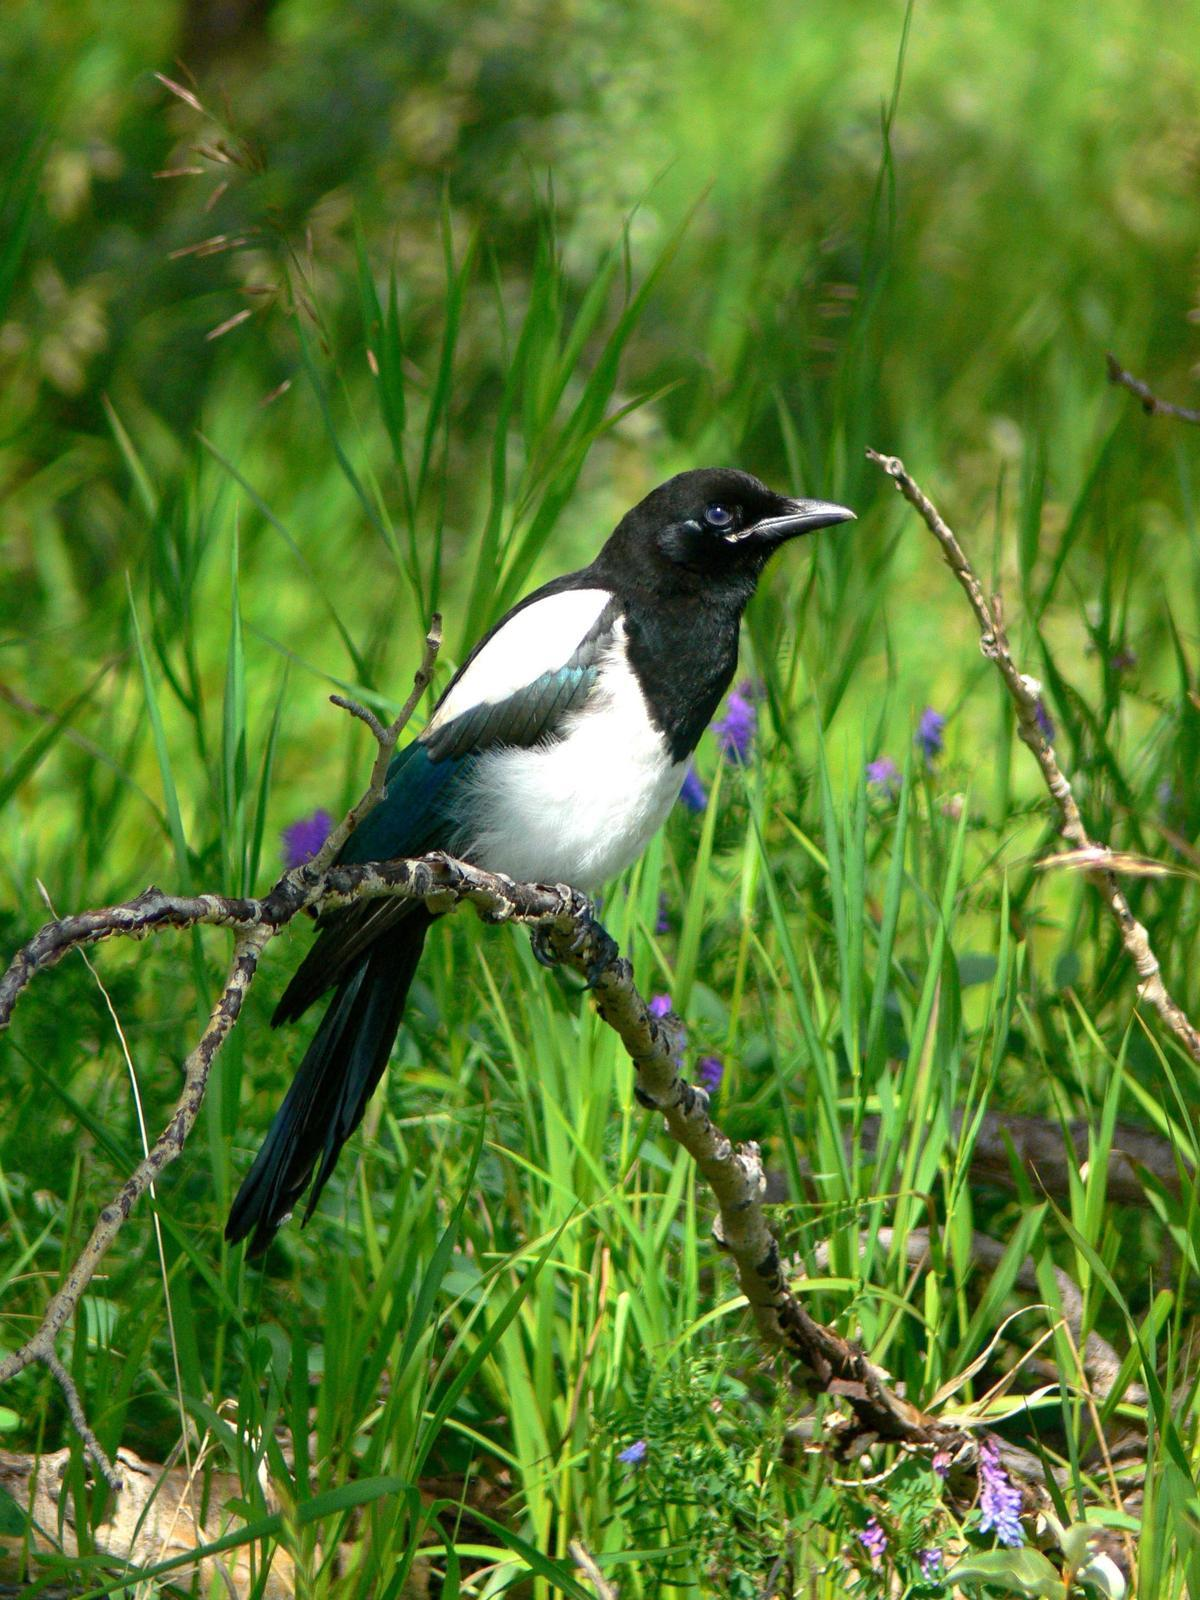 Black-billed Magpie Photo by Tom Ford-Hutchinson